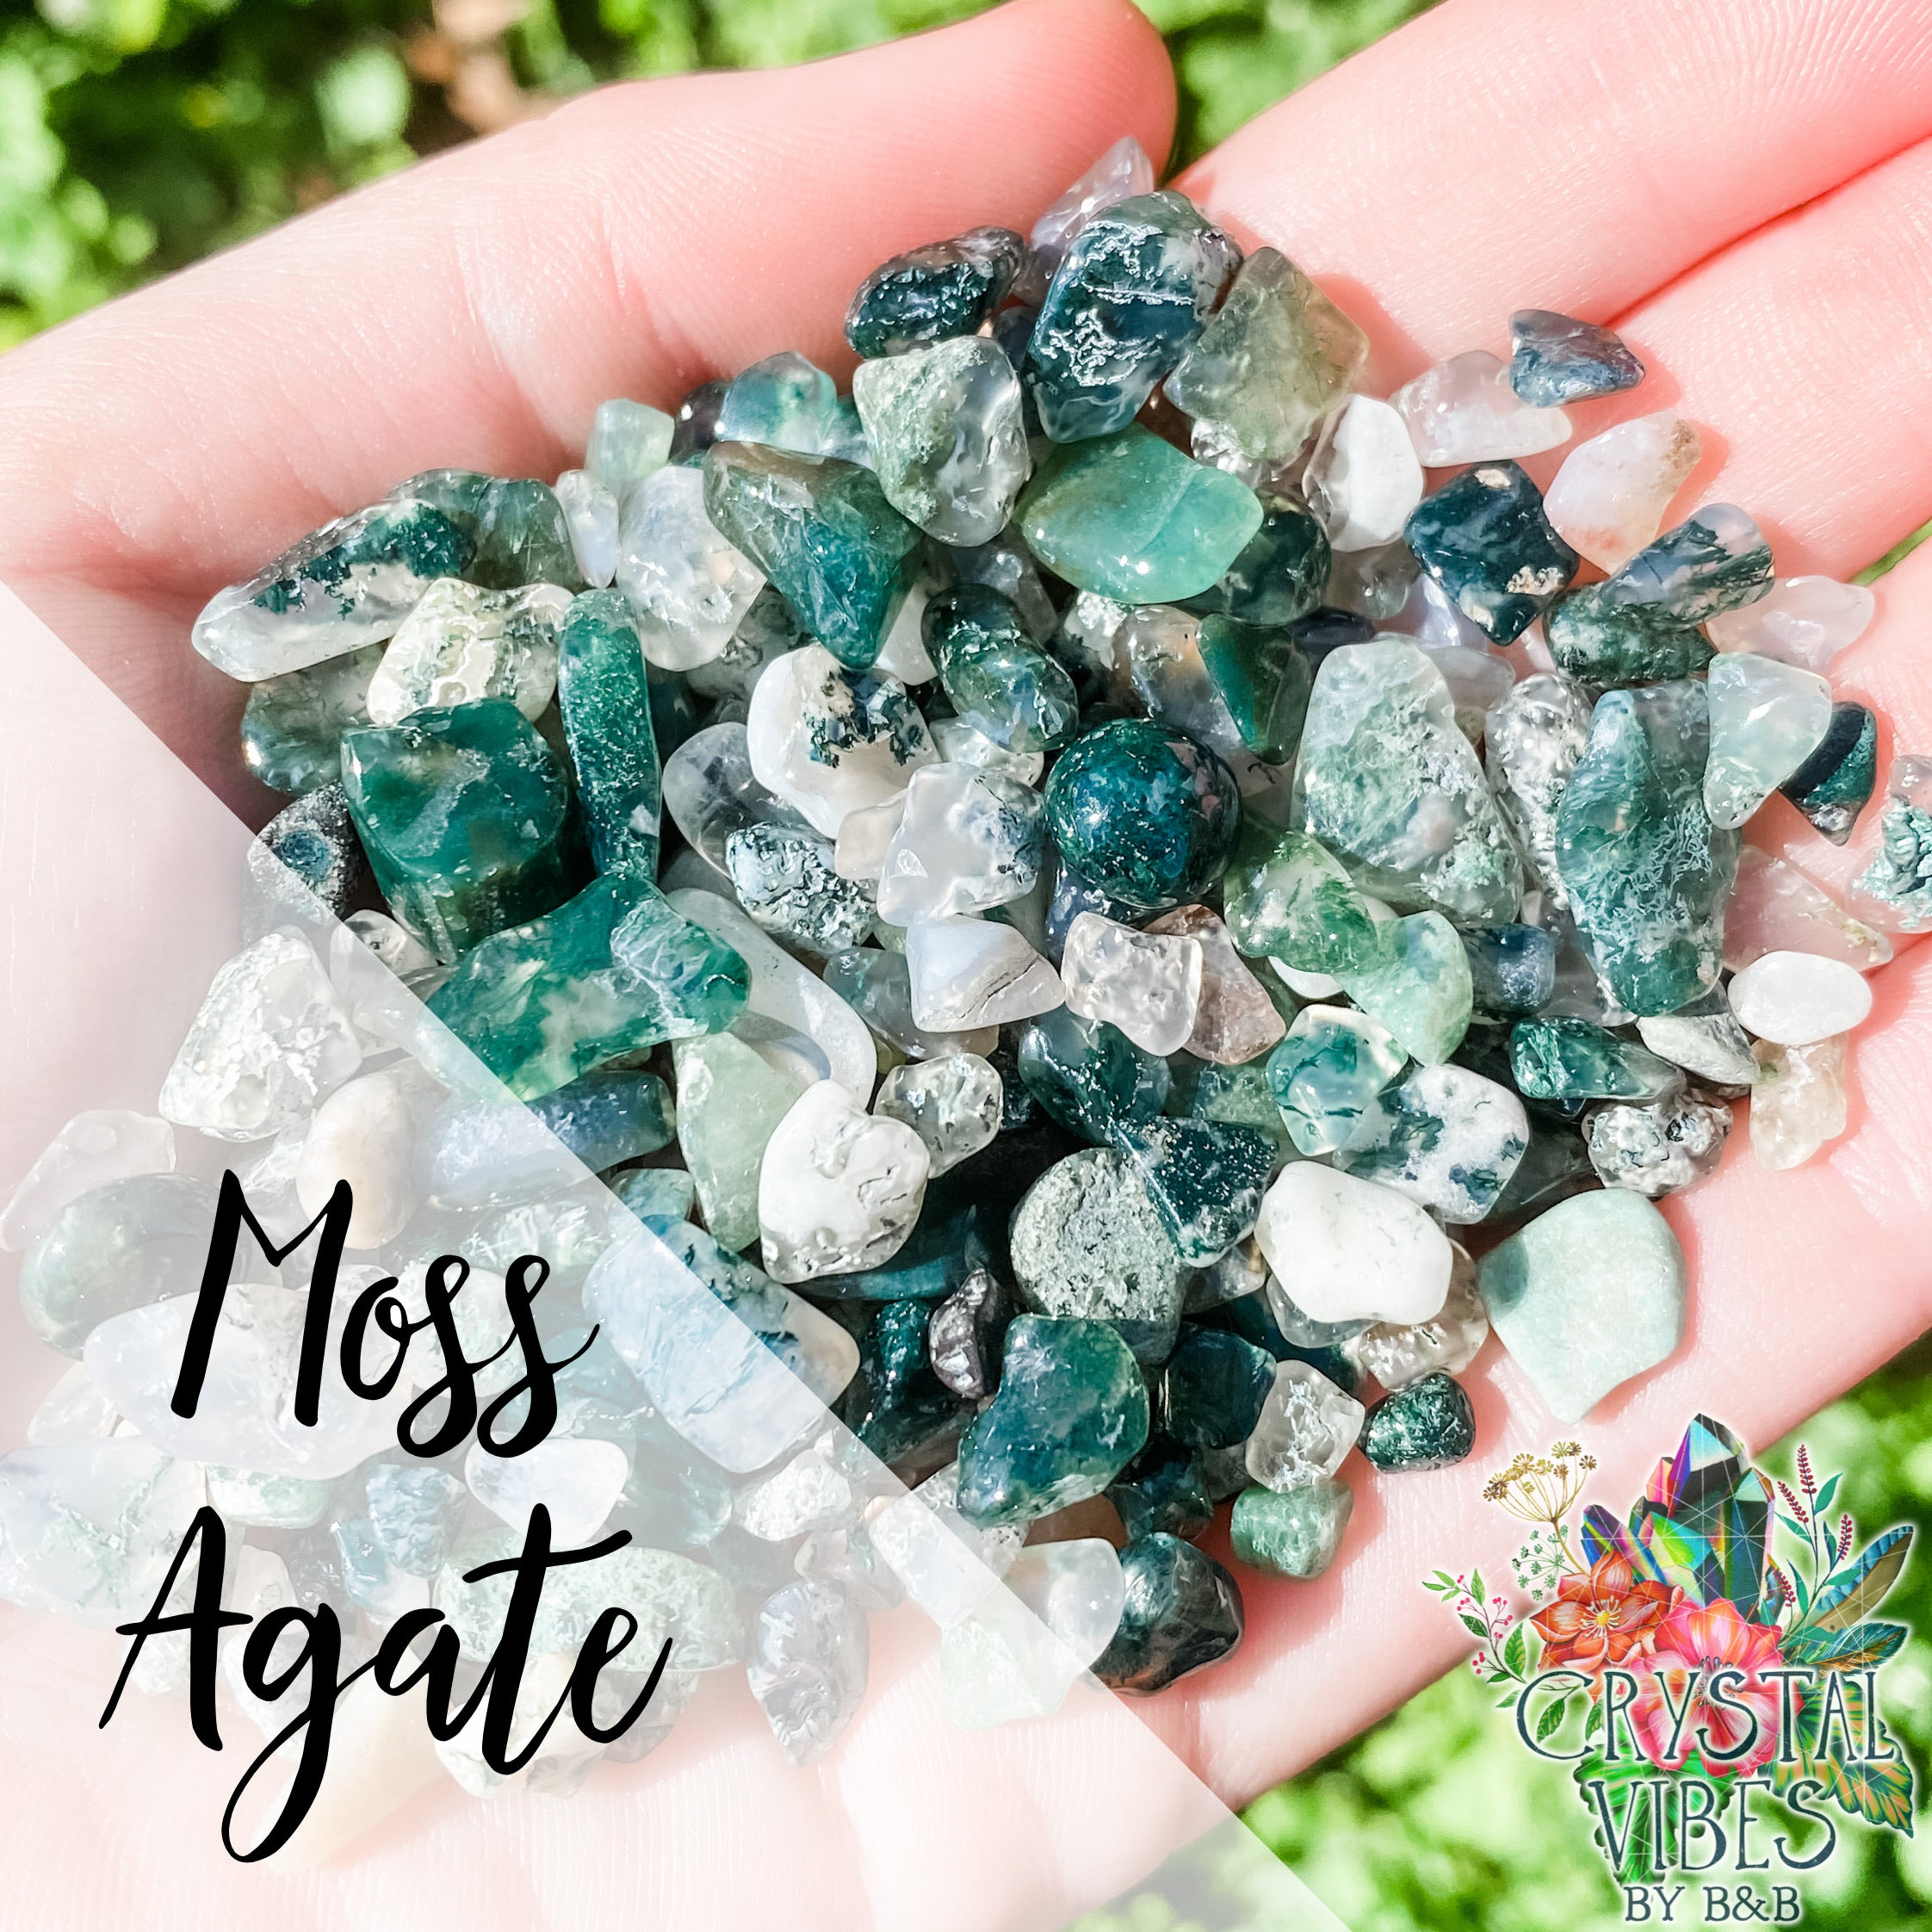 Moss Agate Crystal Chips